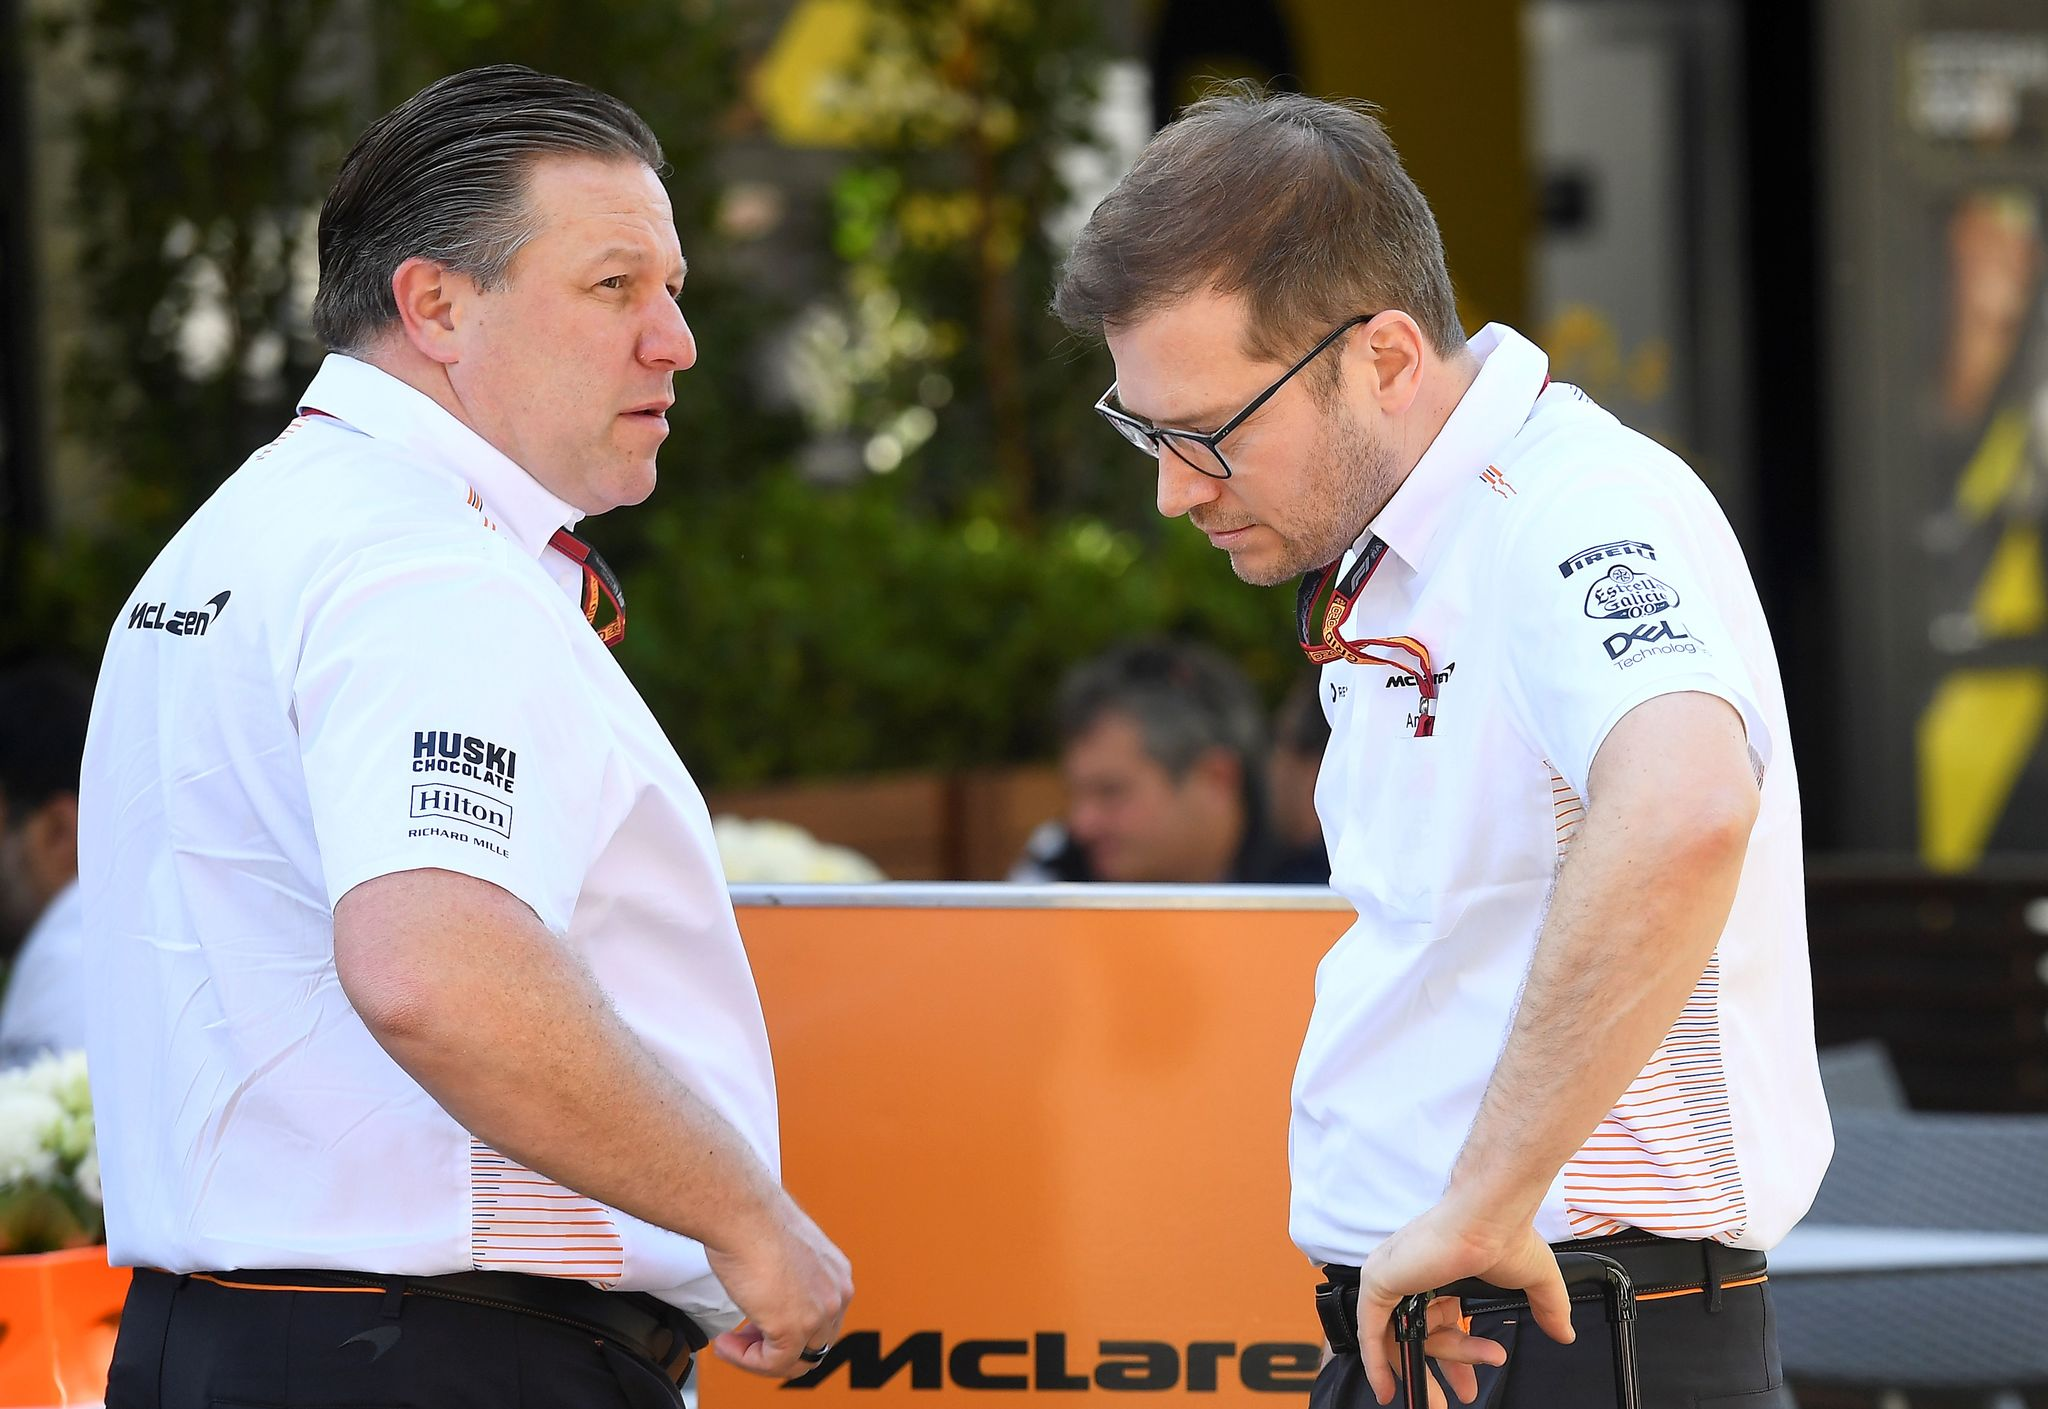 Zak Brown (L), chief executive of lt;HIT gt;McLaren lt;/HIT gt; Racing, talks to a team member in Melbourne on March 12, 2020, ahead of the Formula One Australian Grand Prix. (Photo by William WEST / AFP) / -- IMAGE RESTRICTED TO EDITORIAL USE - STRICTLY NO COMMERCIAL USE --